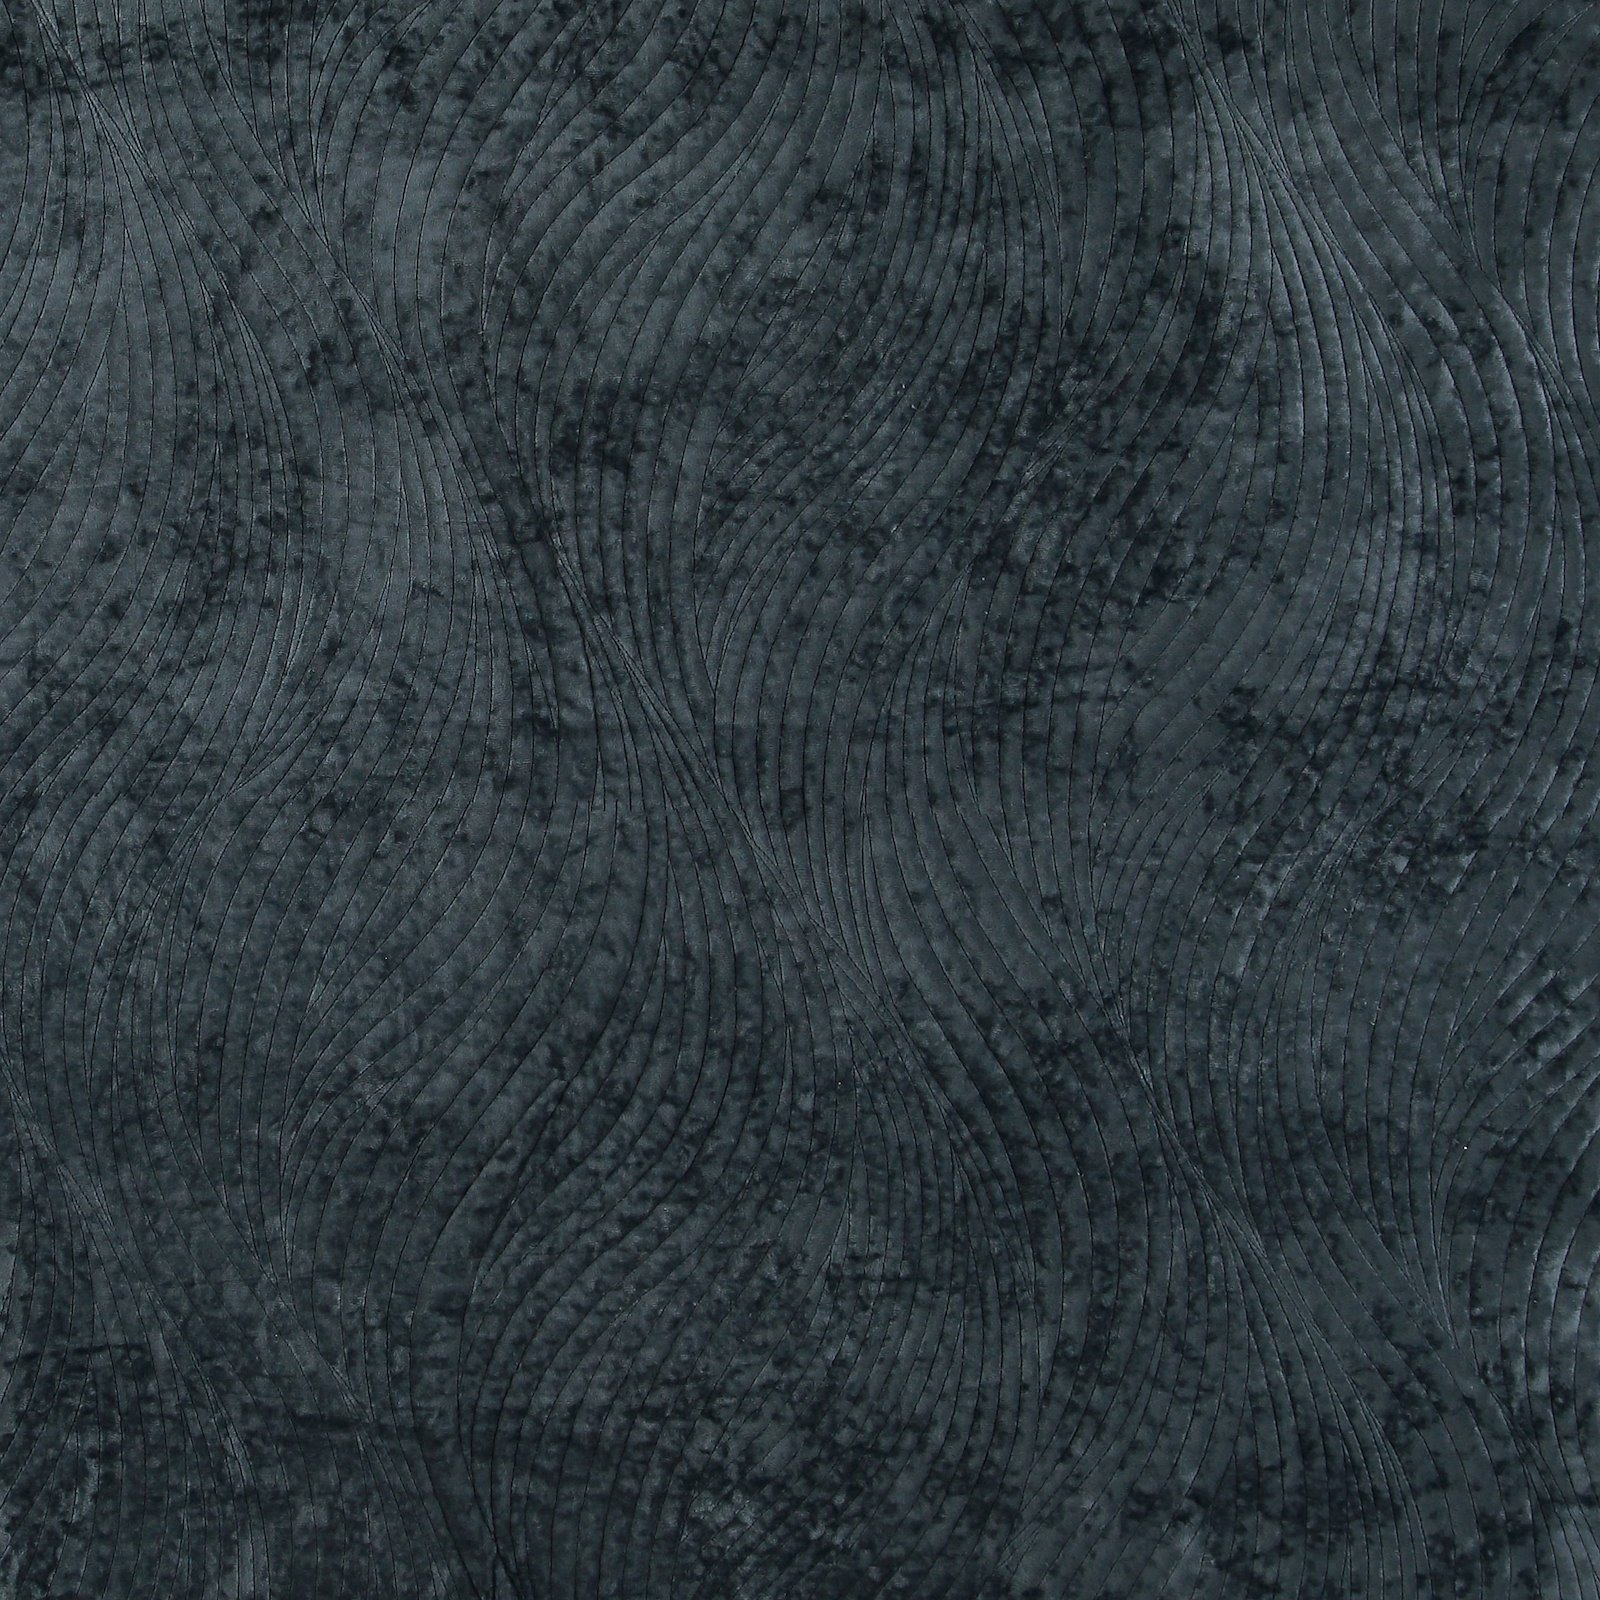 Quilt velvet blue grey abstract pattern 920216_pack_solid